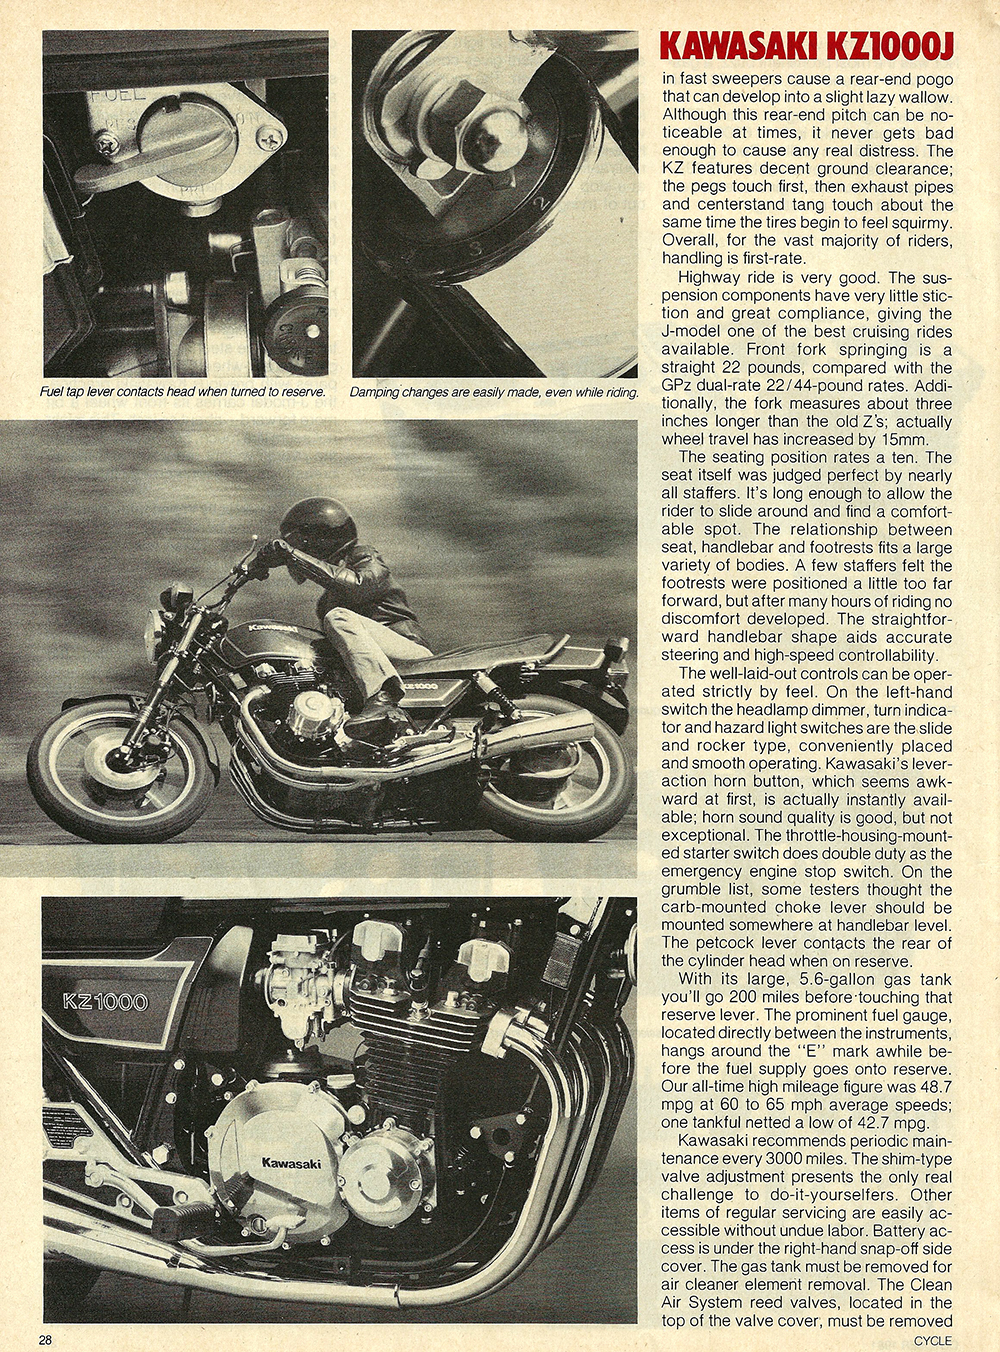 1981 Kawasaki KZ1000 J road test 09.jpg